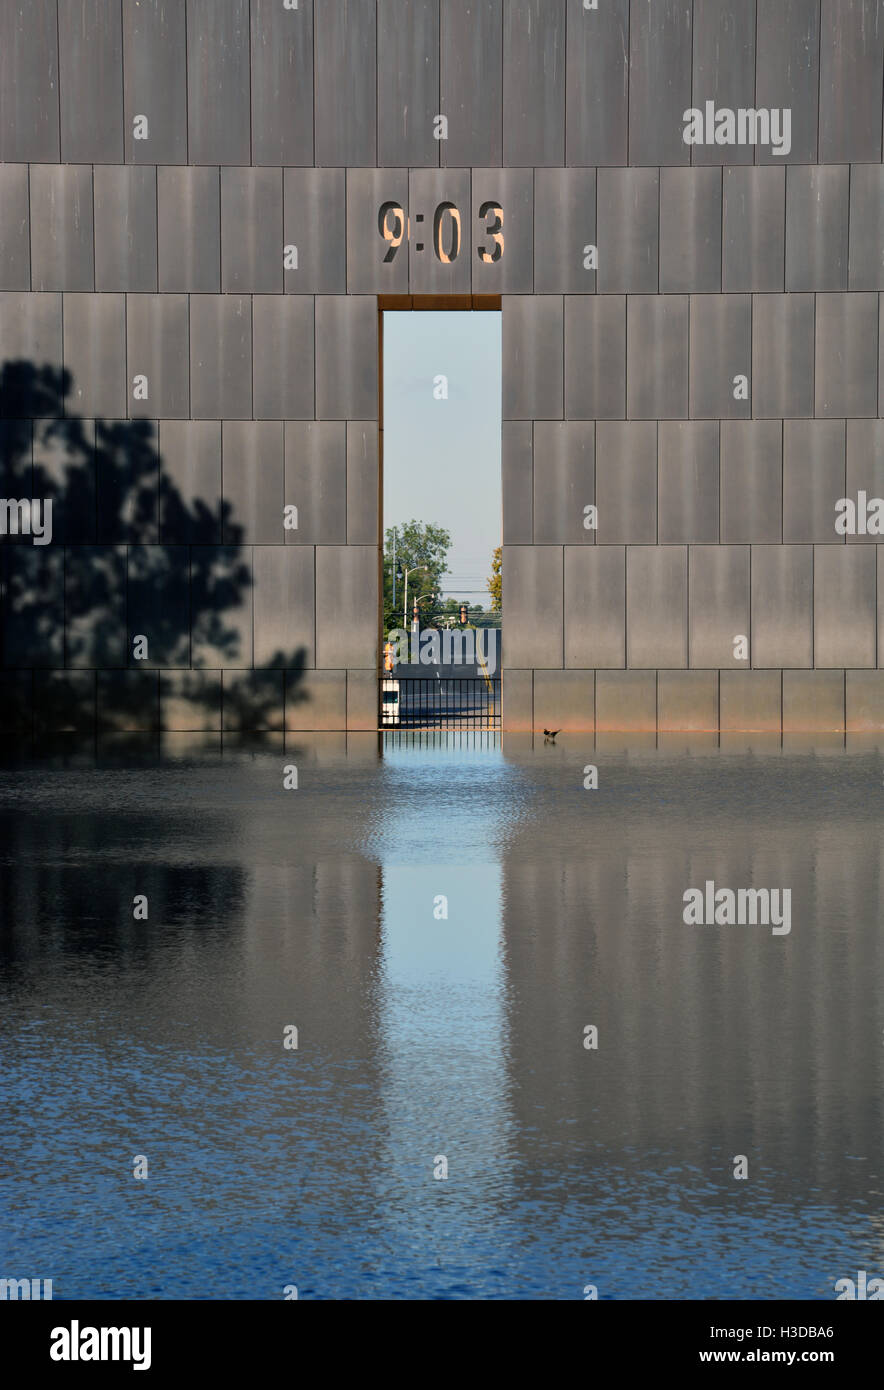 Two gates at the Oklahoma City National Memorial mark before (9:01) and after (9:03) the bombing of the Murrah Federal Stock Photo